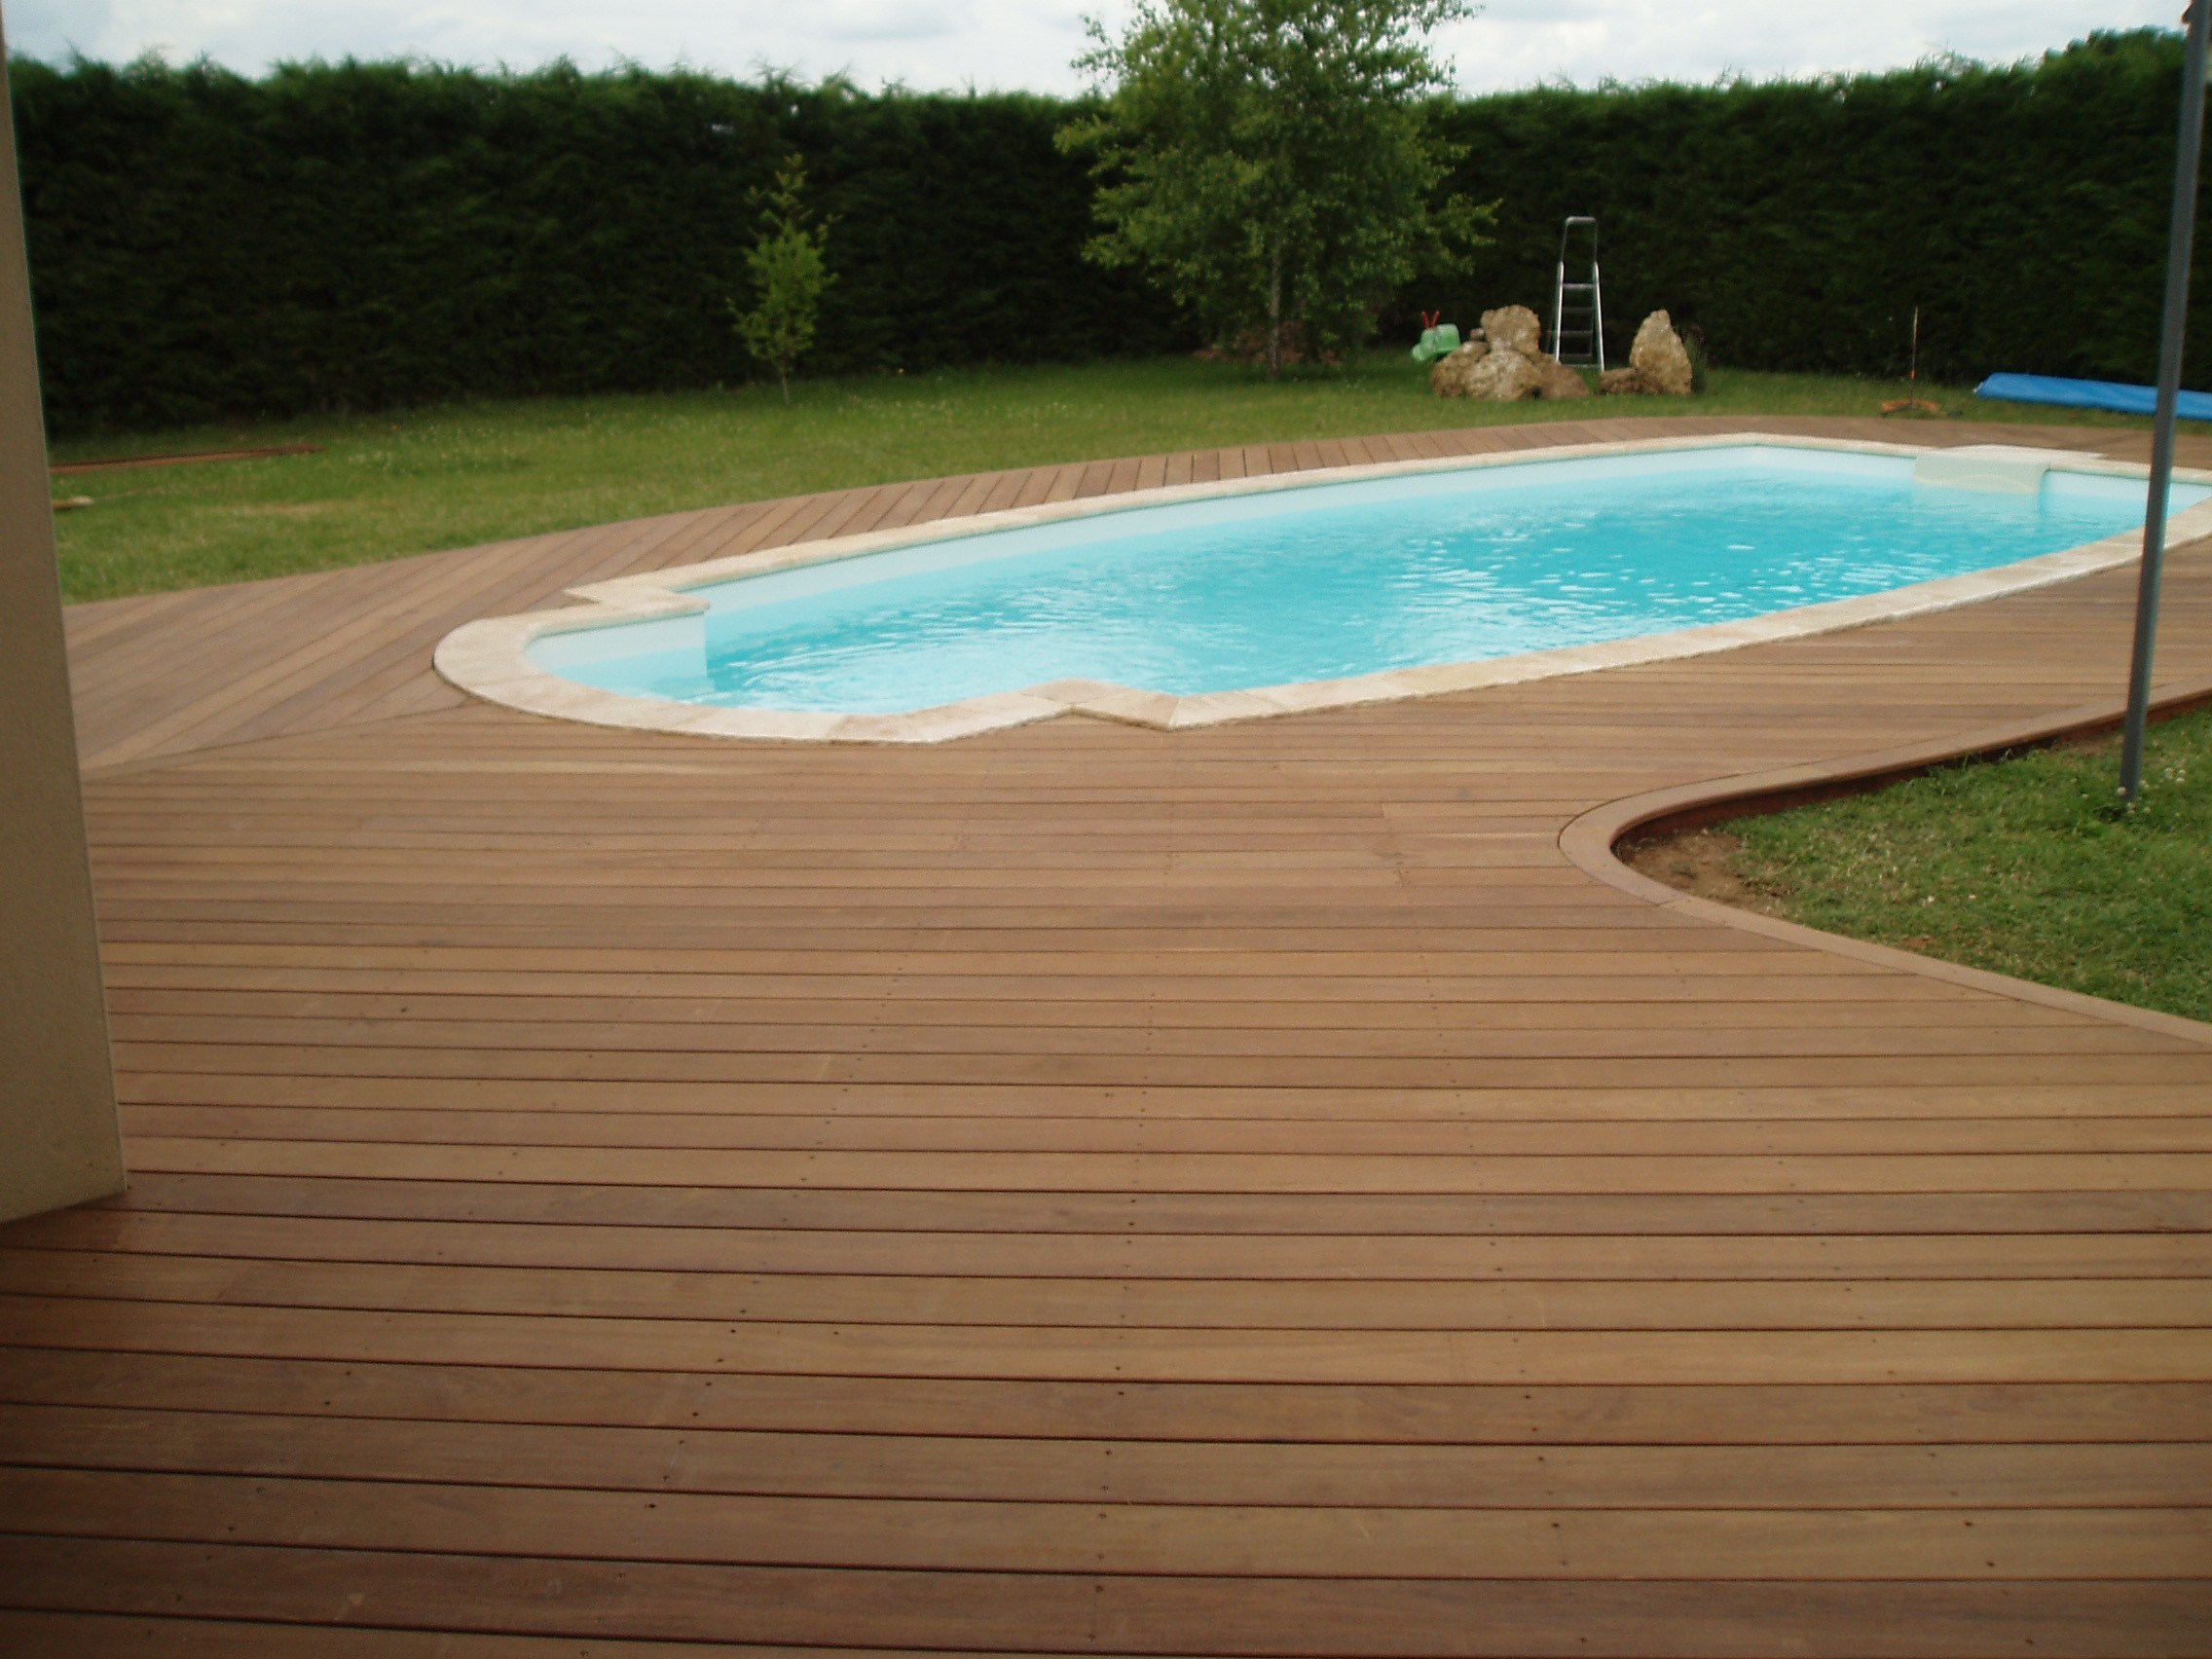 Photo Amenagement Terrasse Piscine Terrasse De Piscine En Bois Quel Budget Prévoir Et